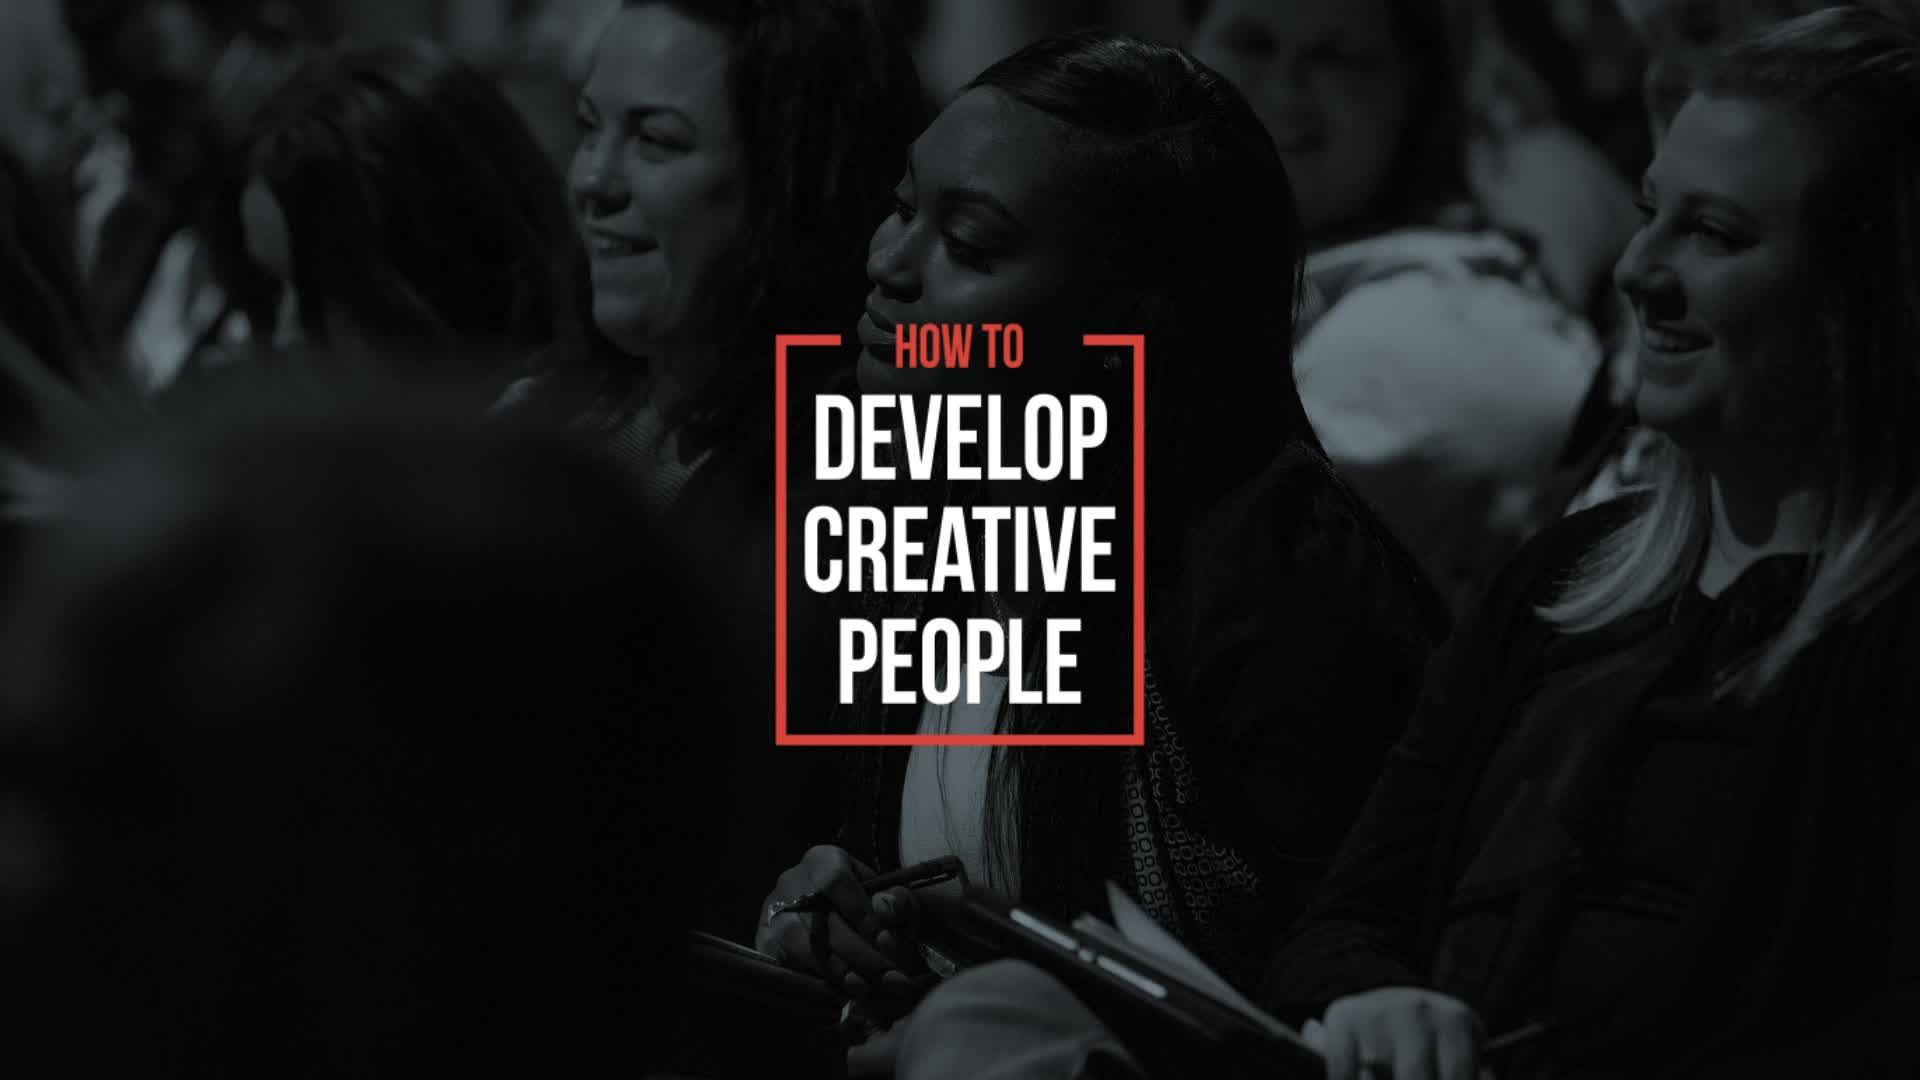 How To Develop Creative People